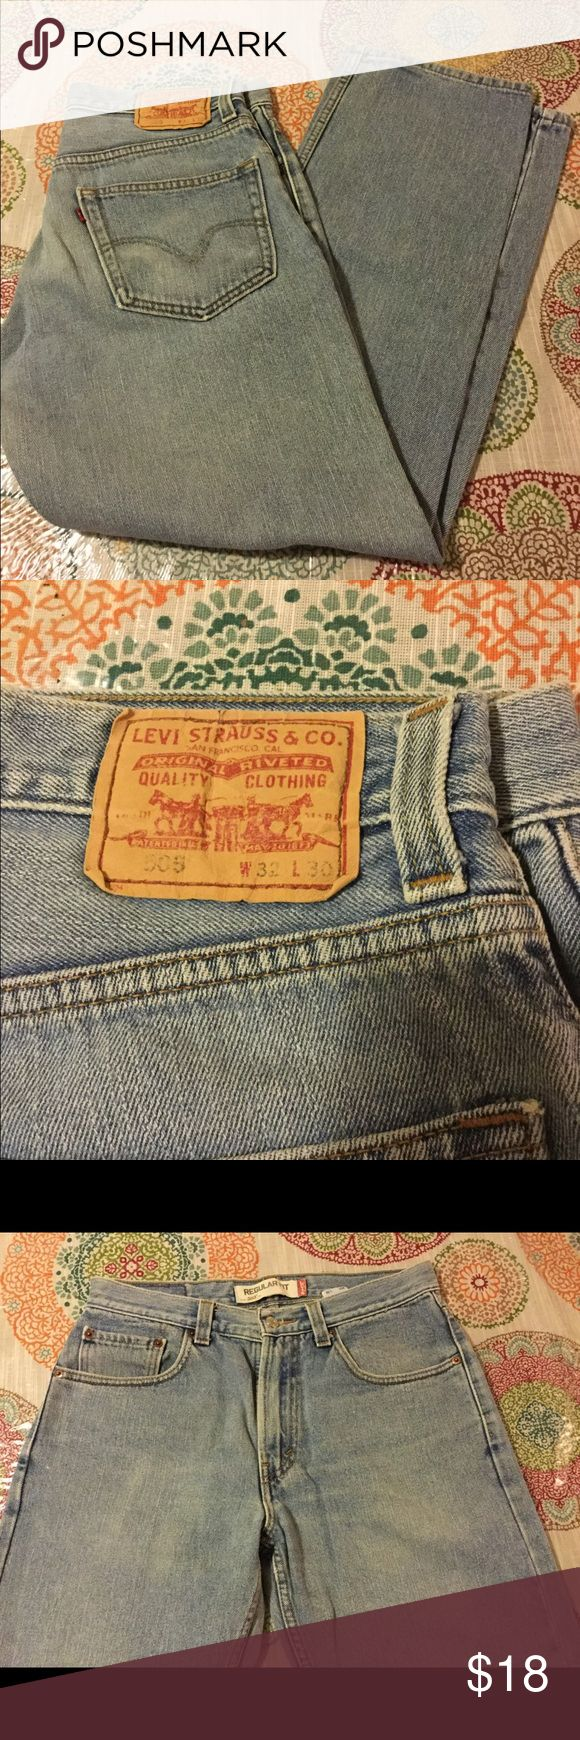 Mens Levis 505 Jeans Size 32x30 This is a well loved pair of men's Levis 505 regular fit Jeans in size 32x30. Levi's Jeans Straight